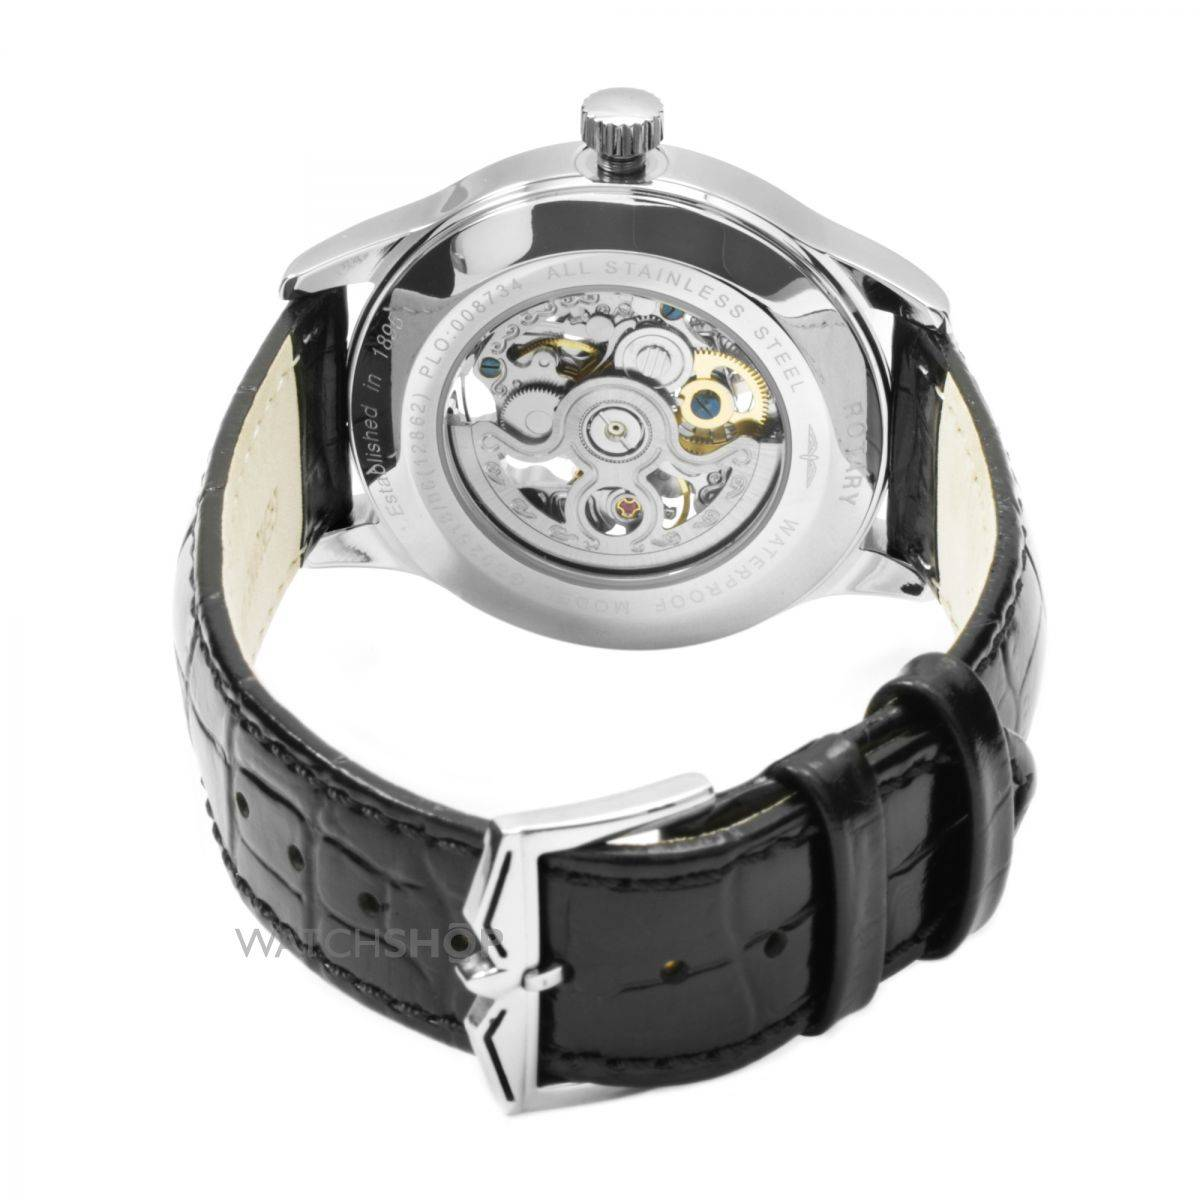 Rotary GS0251806 review